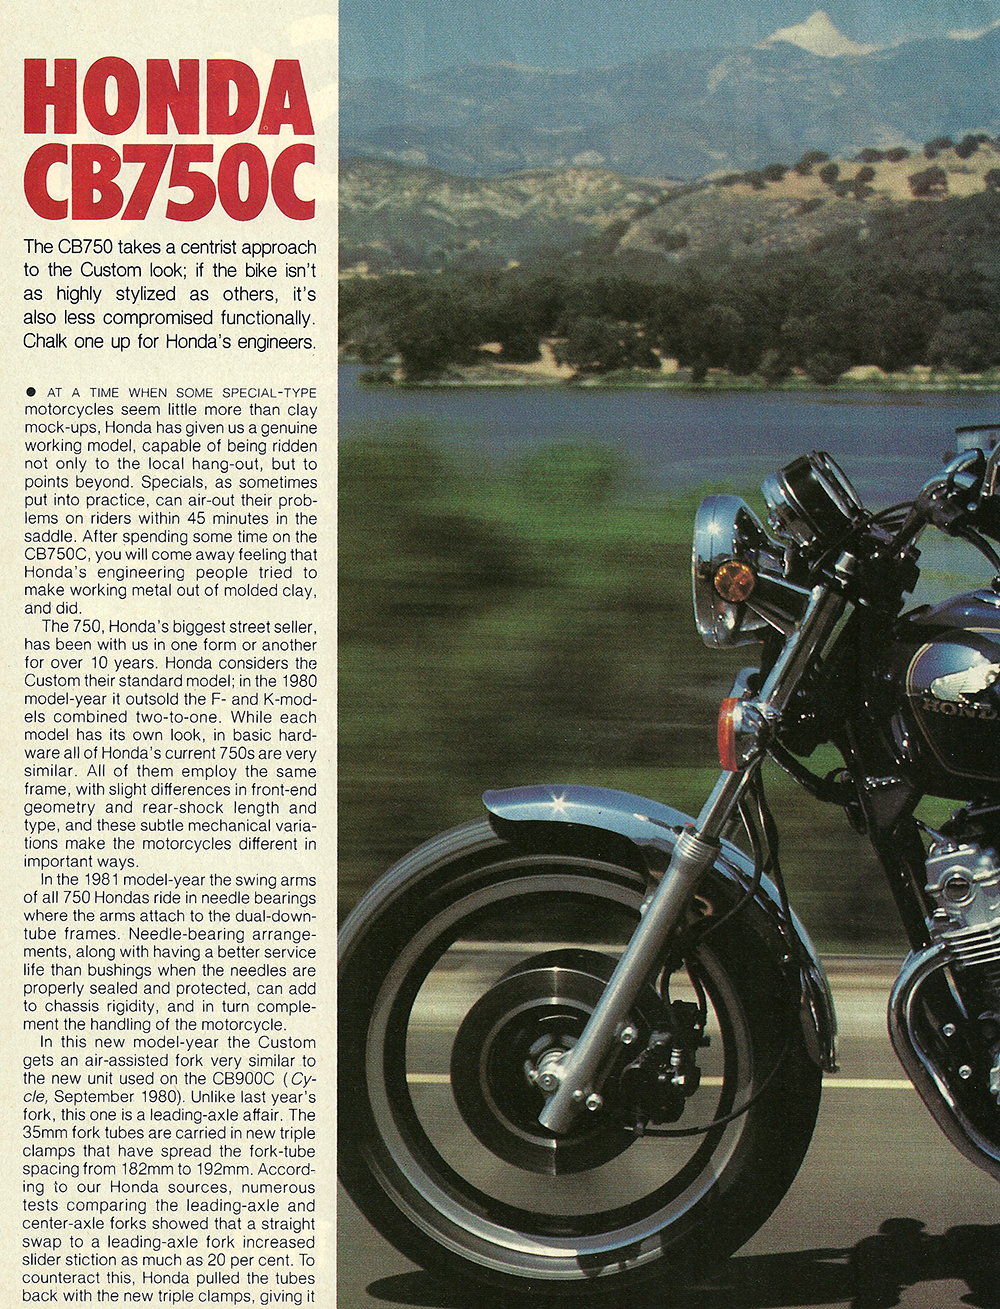 1980 Honda CB750C road test 01.jpg